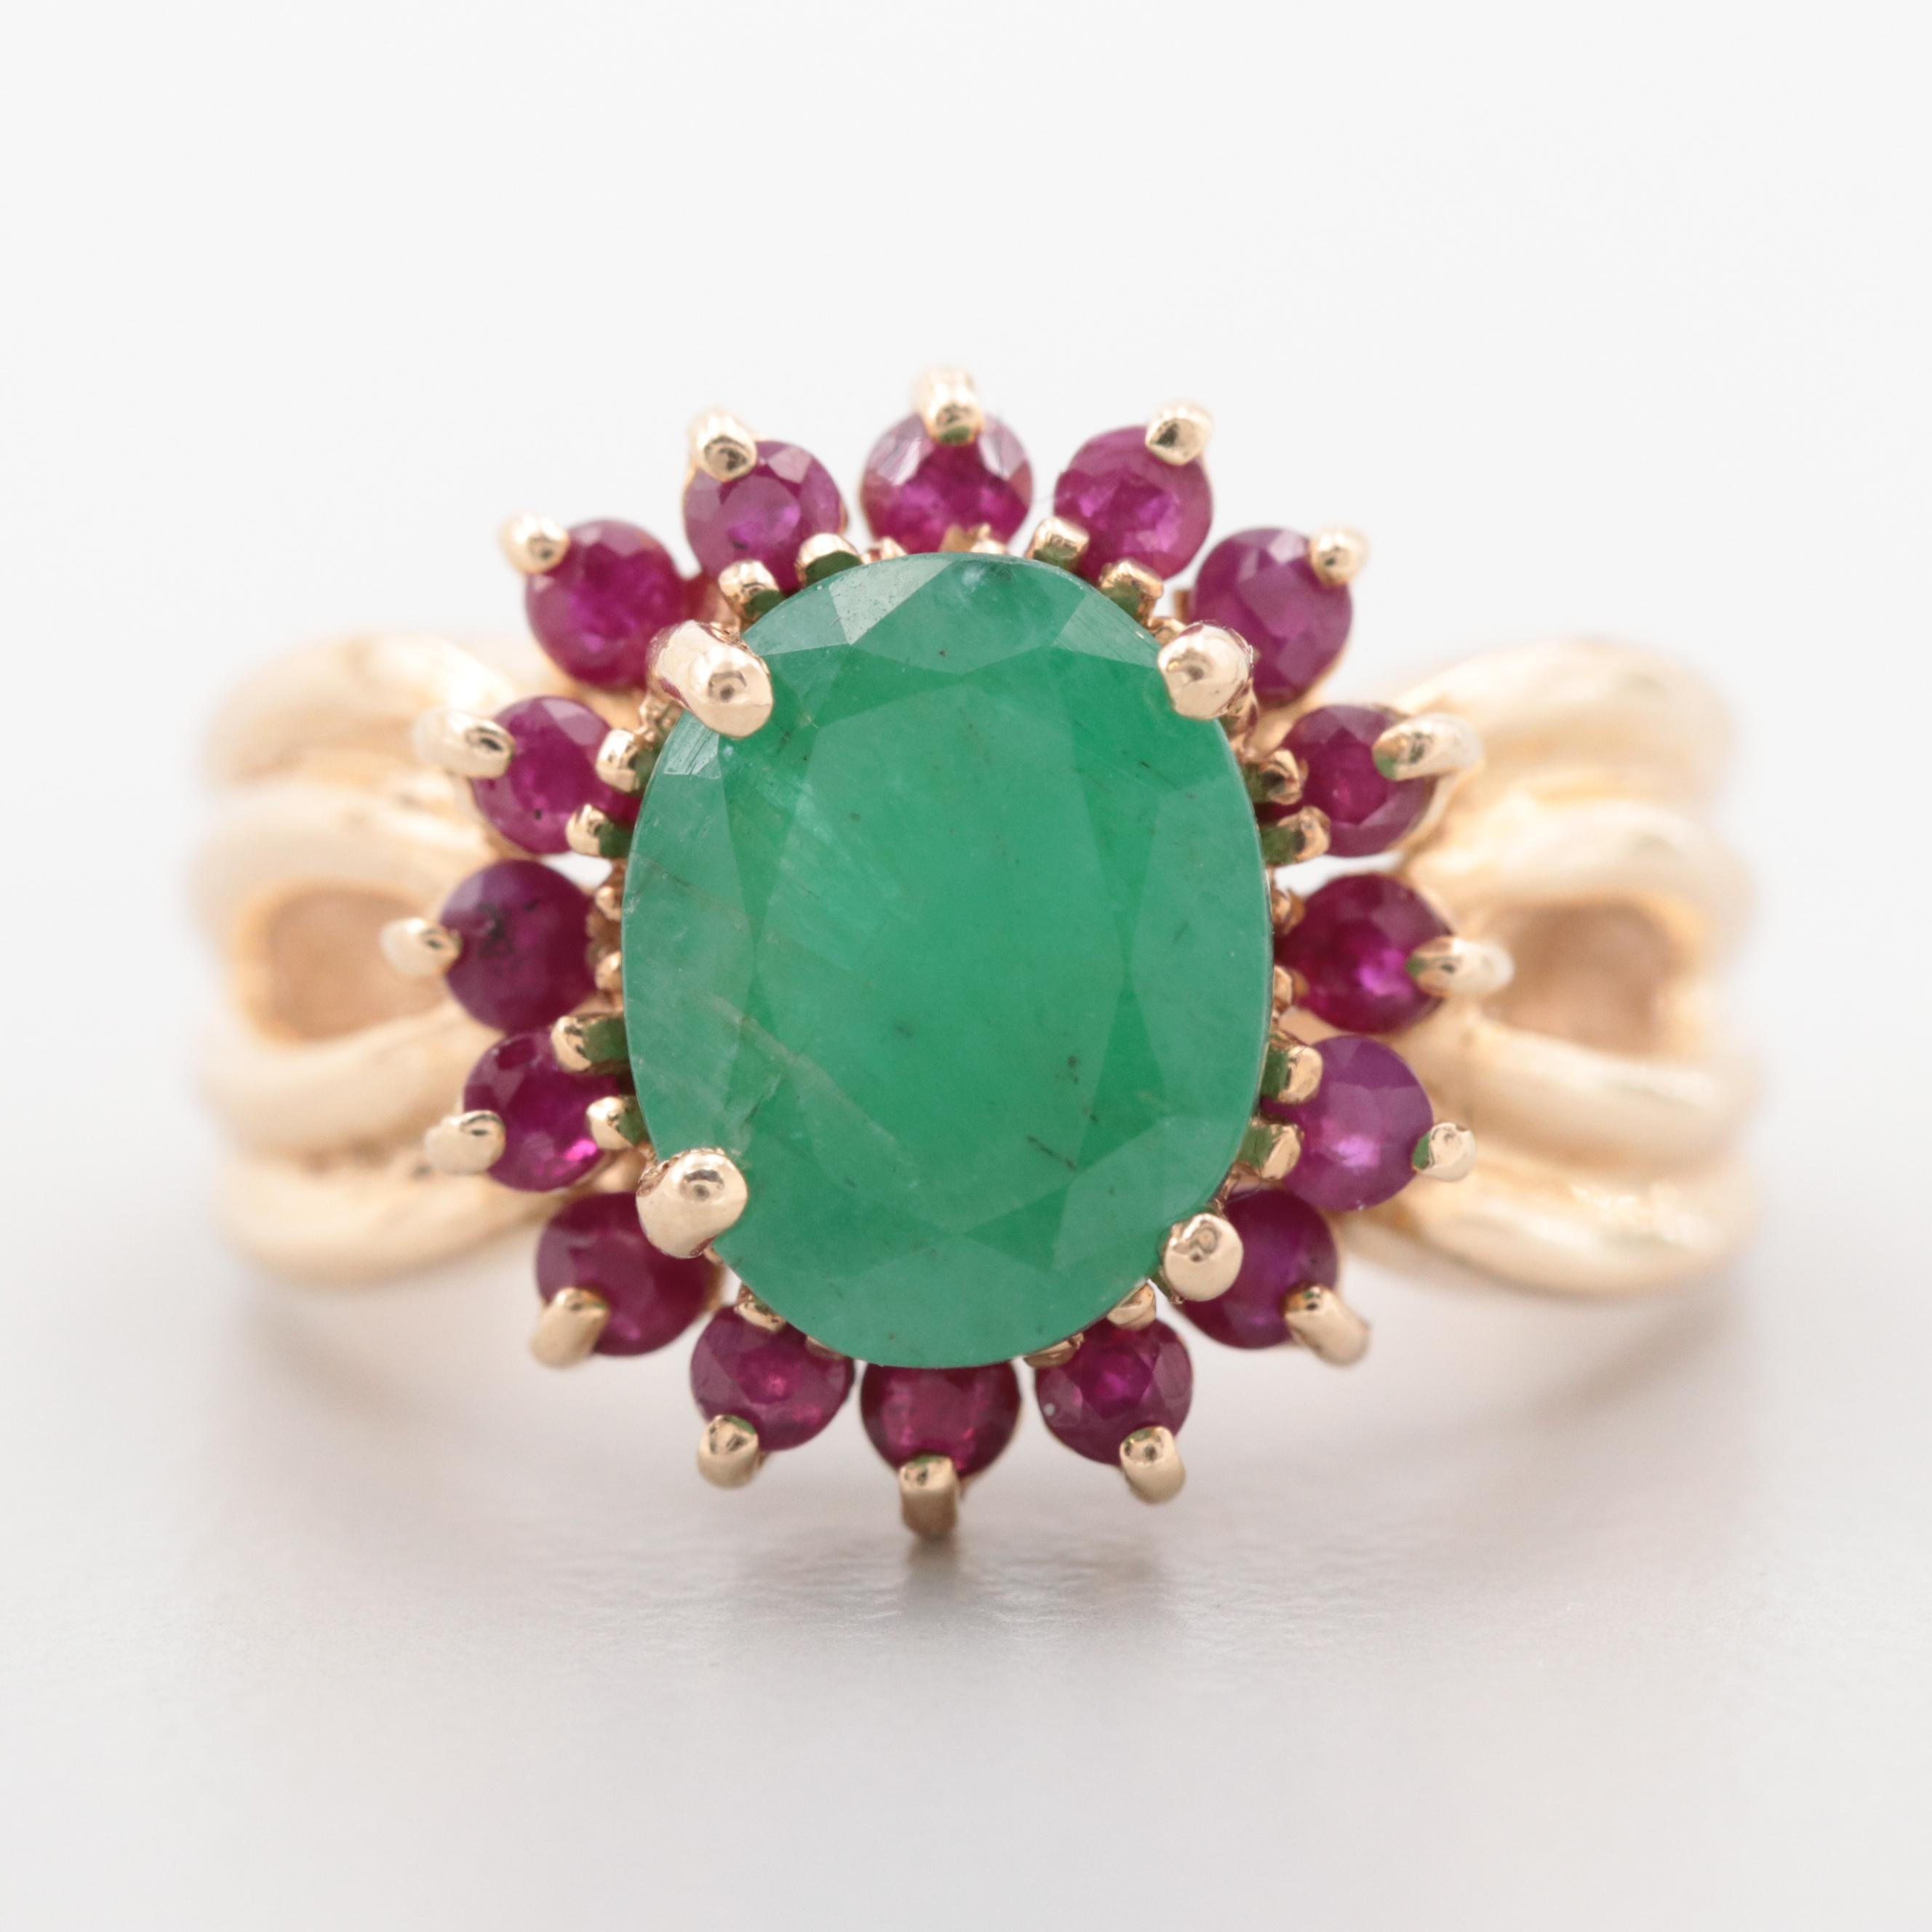 14K Yellow Gold 1.91 CT Emerald and Ruby Halo Ring